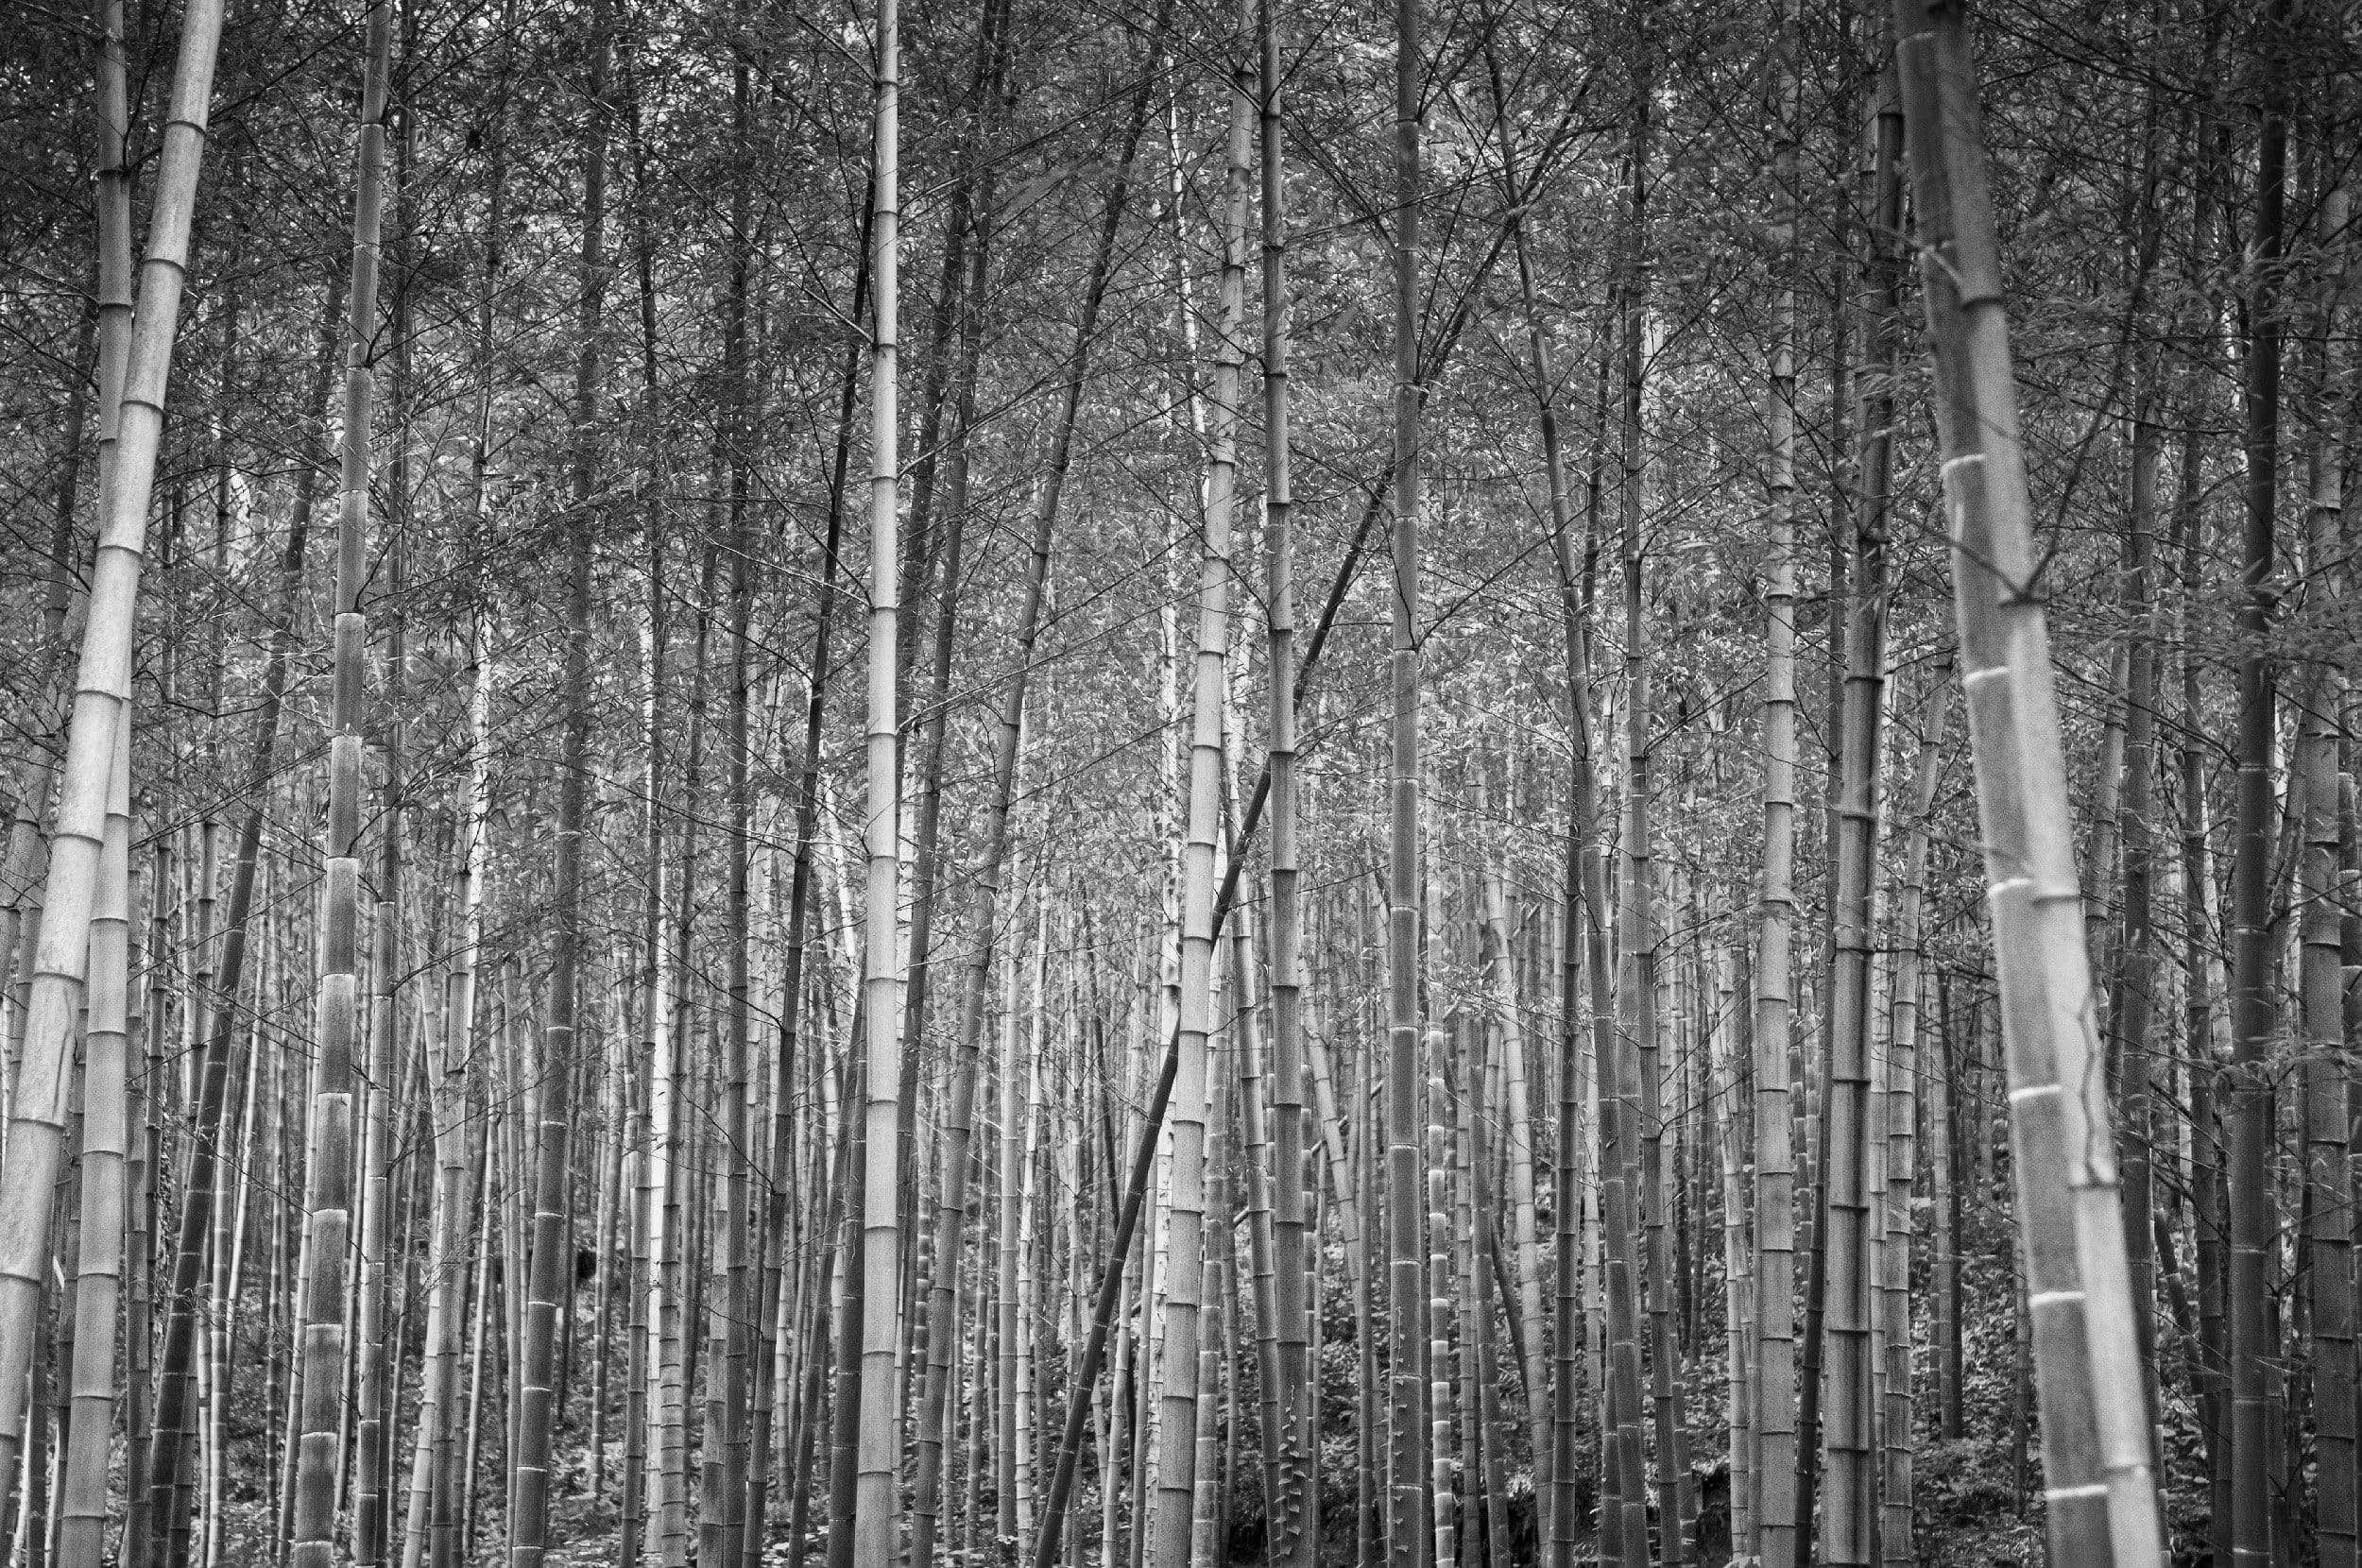 Black and White Cane trees